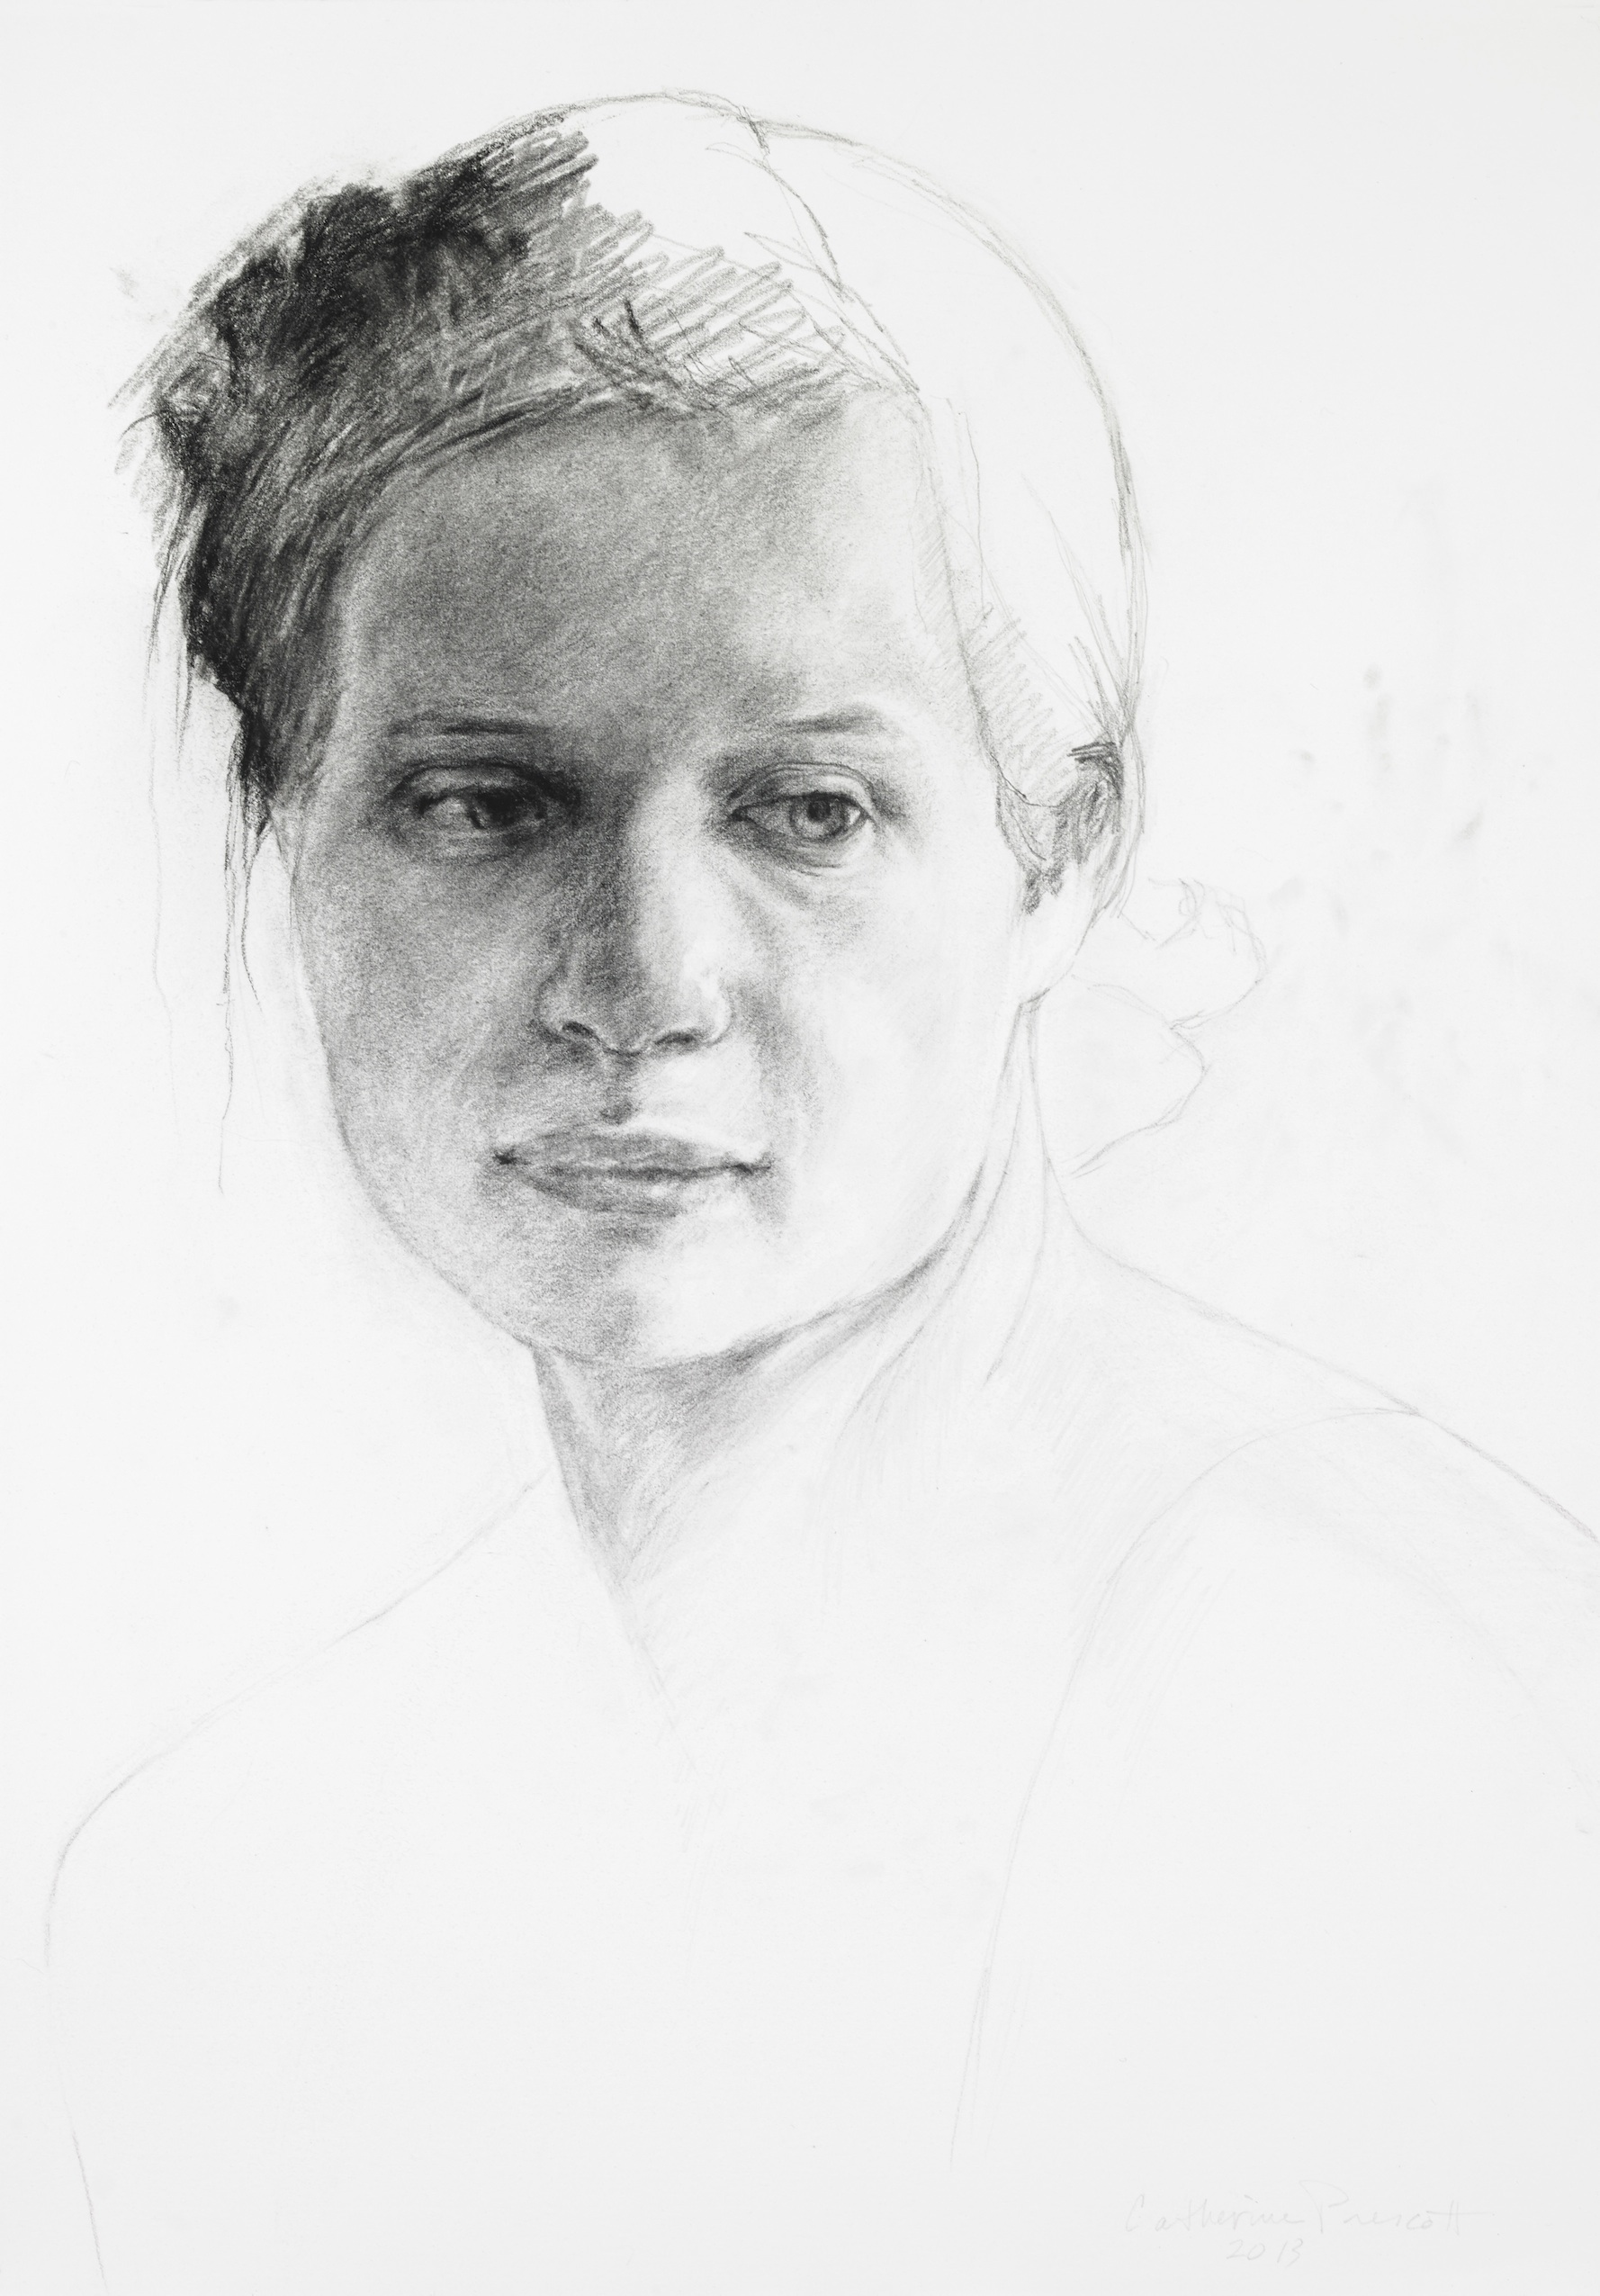 Study of Elle , Graphite on Paper, 2013, 19 x 13 1/4, Collection State Museum of Pennsylvania